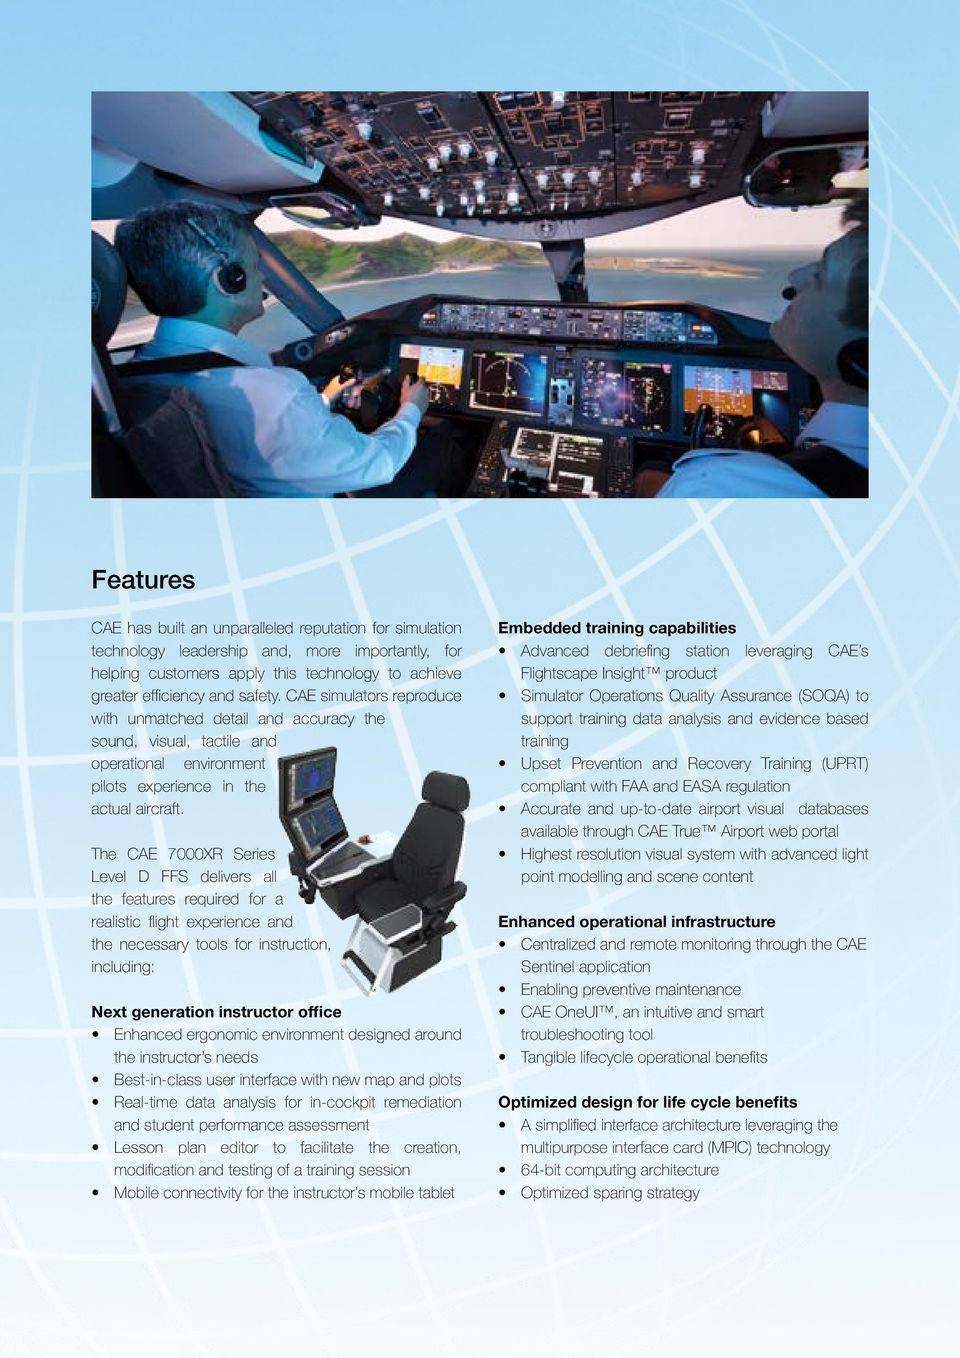 The CAE 7000XR Series Level D FFS delivers all the features required for a realistic flight experience and the necessary tools for instruction, including: Next generation instructor office Enhanced